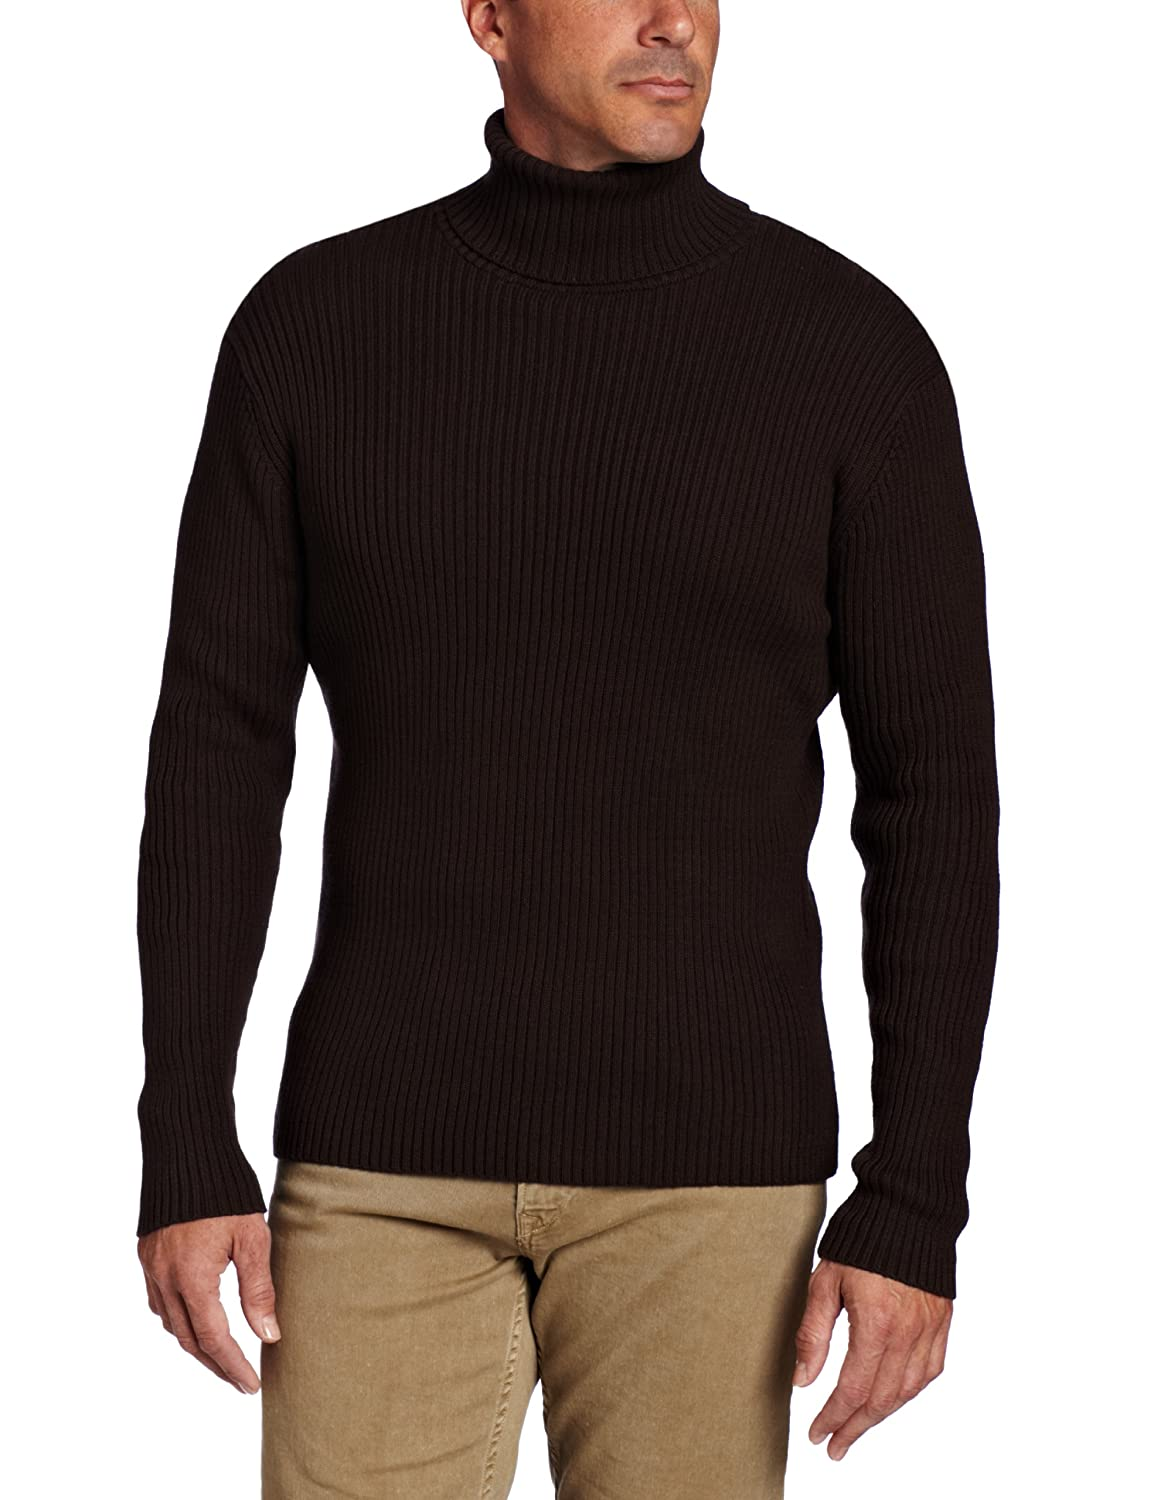 Alex Stevens Men's Cable Turtleneck, Fatigue, Small at Amazon ...